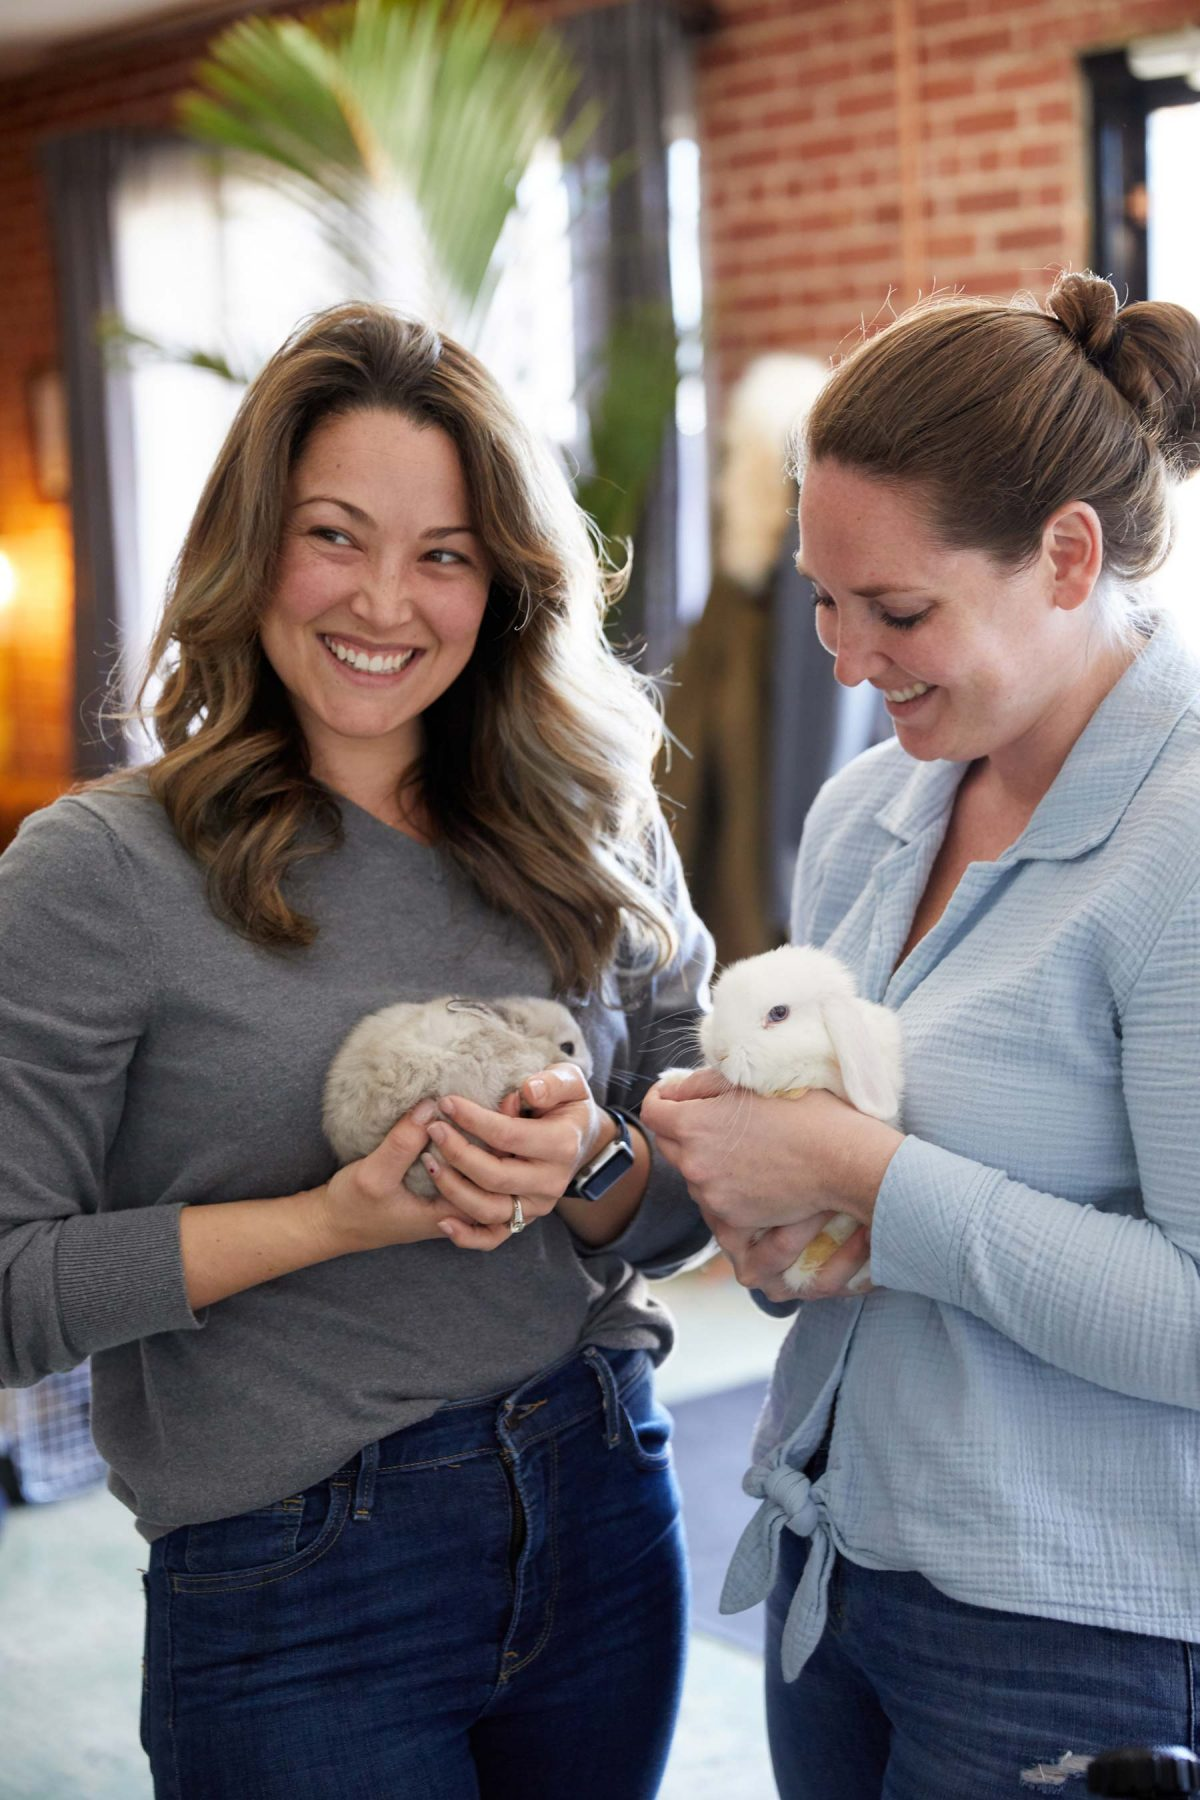 Two smiling women holding white bunnies